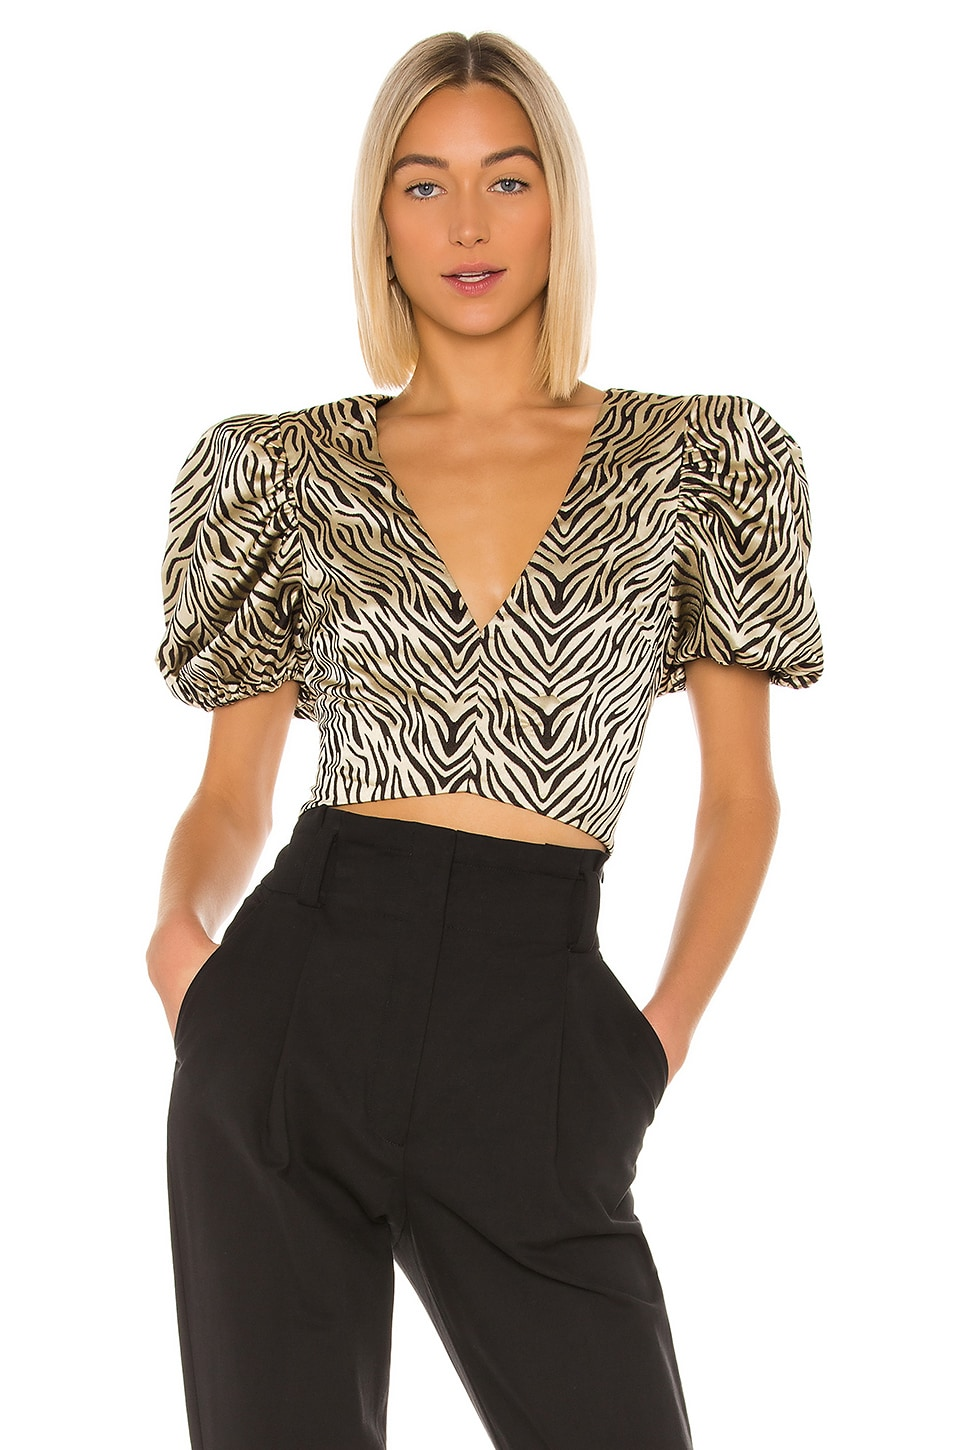 House of Harlow 1960 x REVOLVE Cipriana Top in Cream & Black